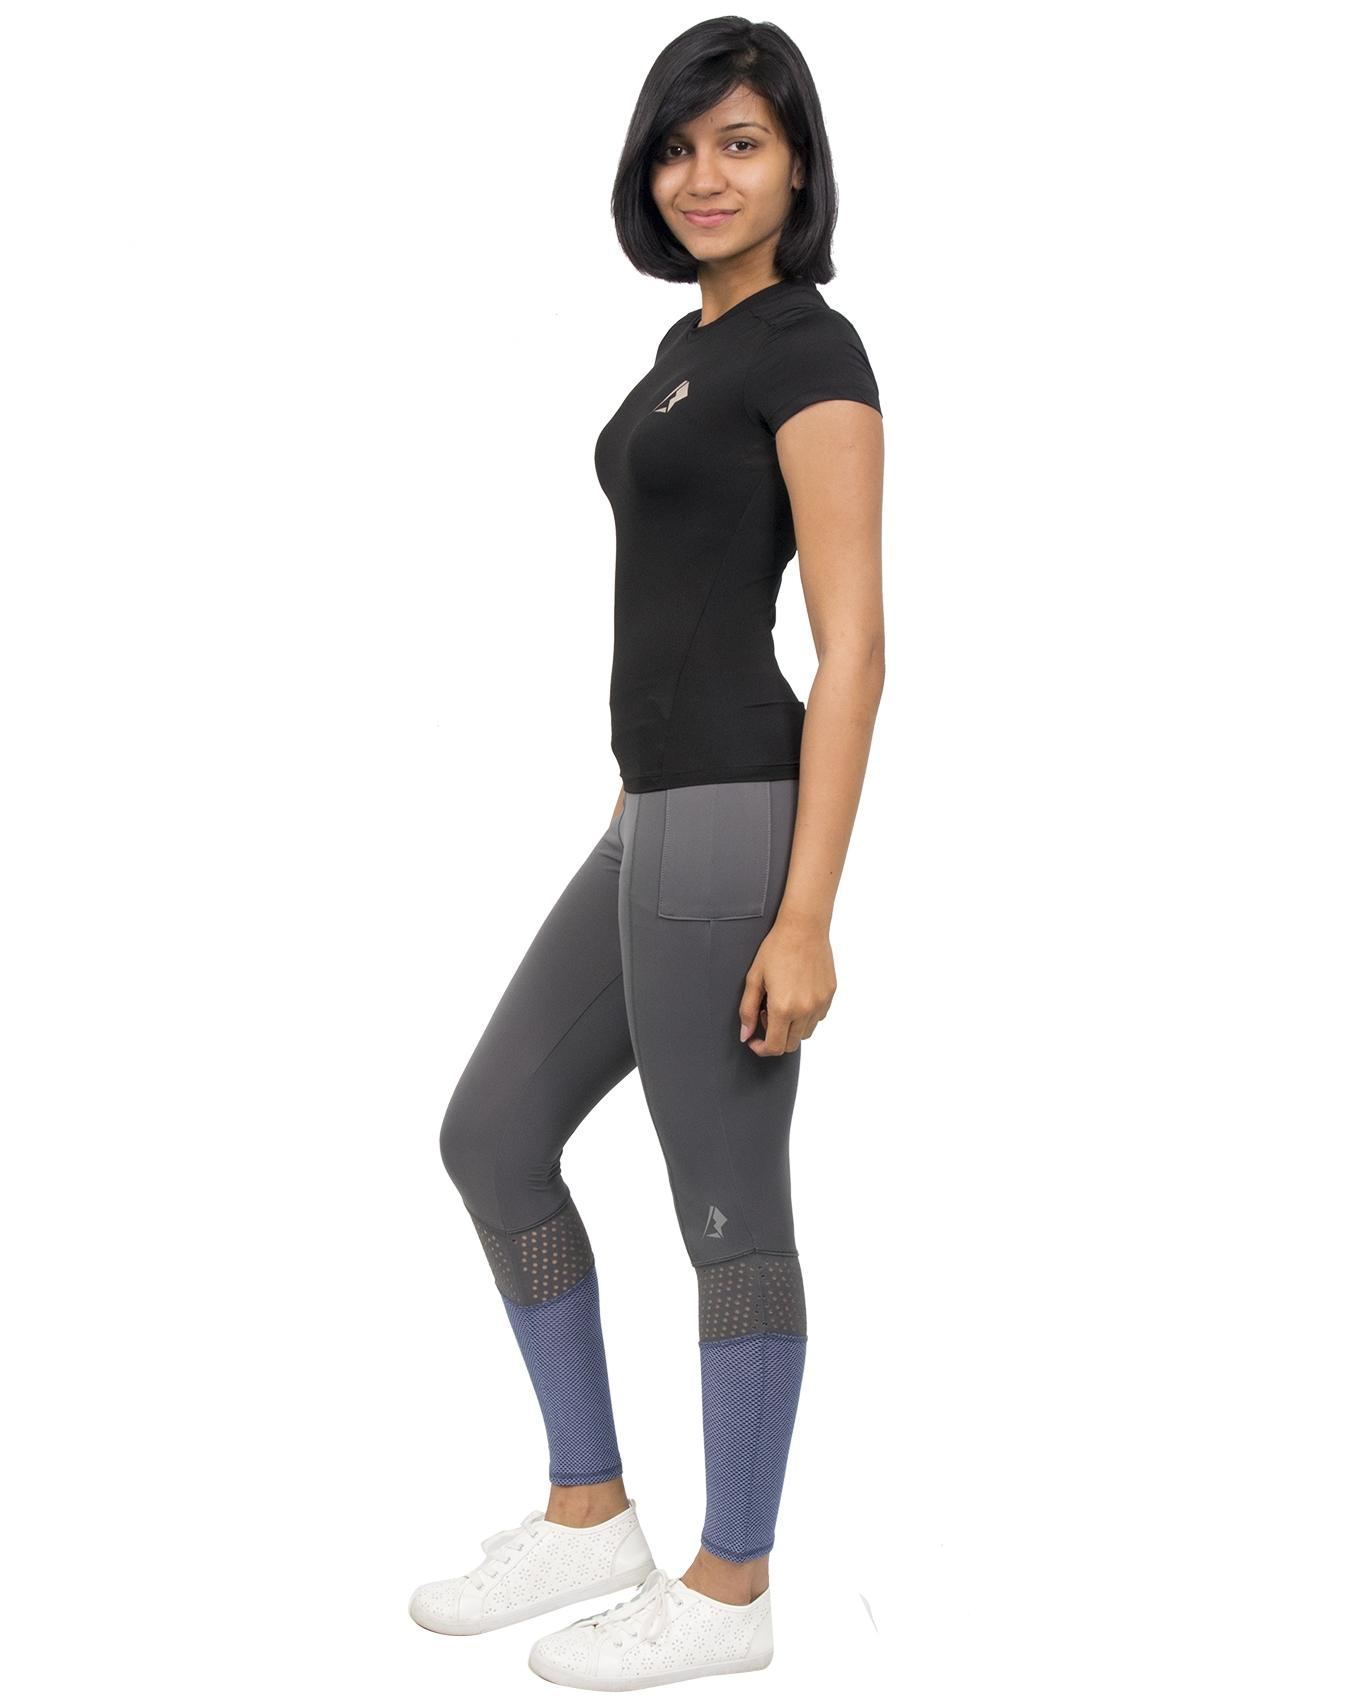 e5563a2465869 Womens Sports Clothing - Buy Womens Sports Clothing at Best Price in ...